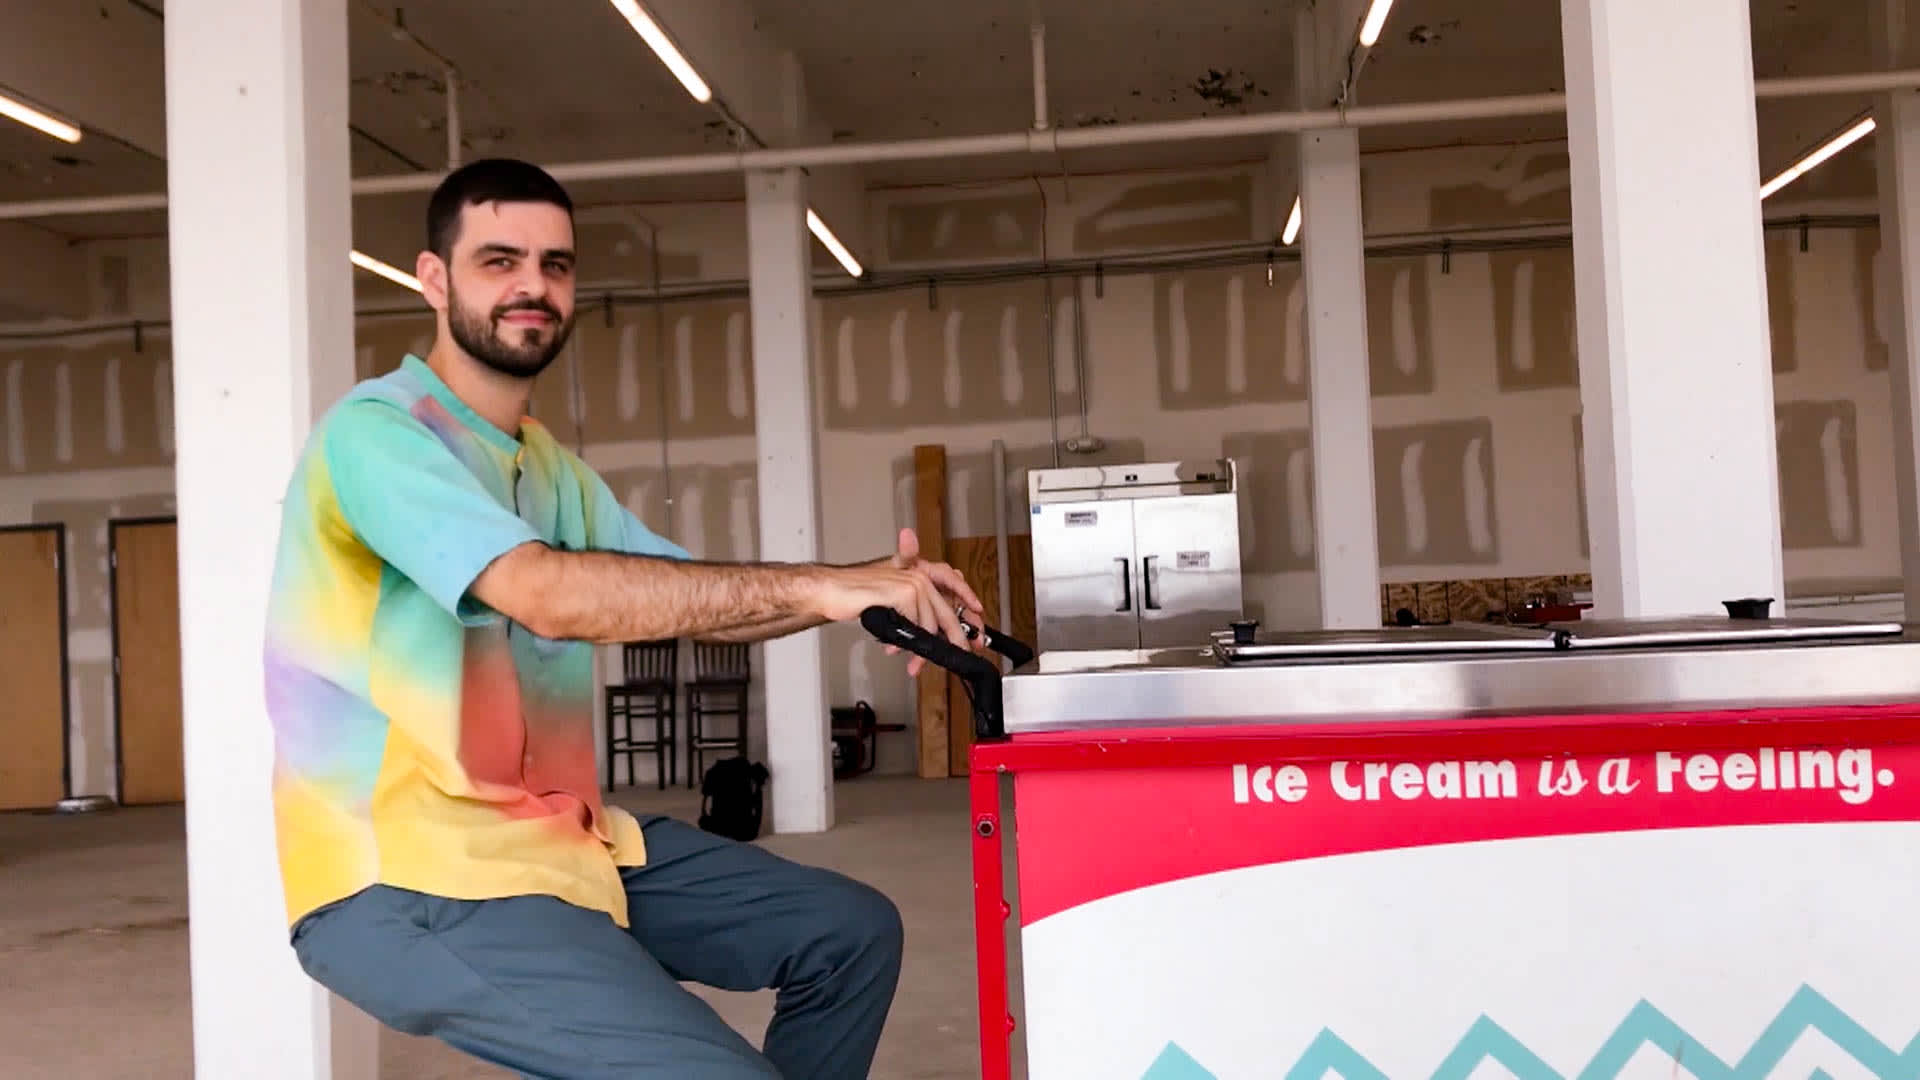 A homemade YouTube video helped this wacky-flavored ice cream company bring in $1 million